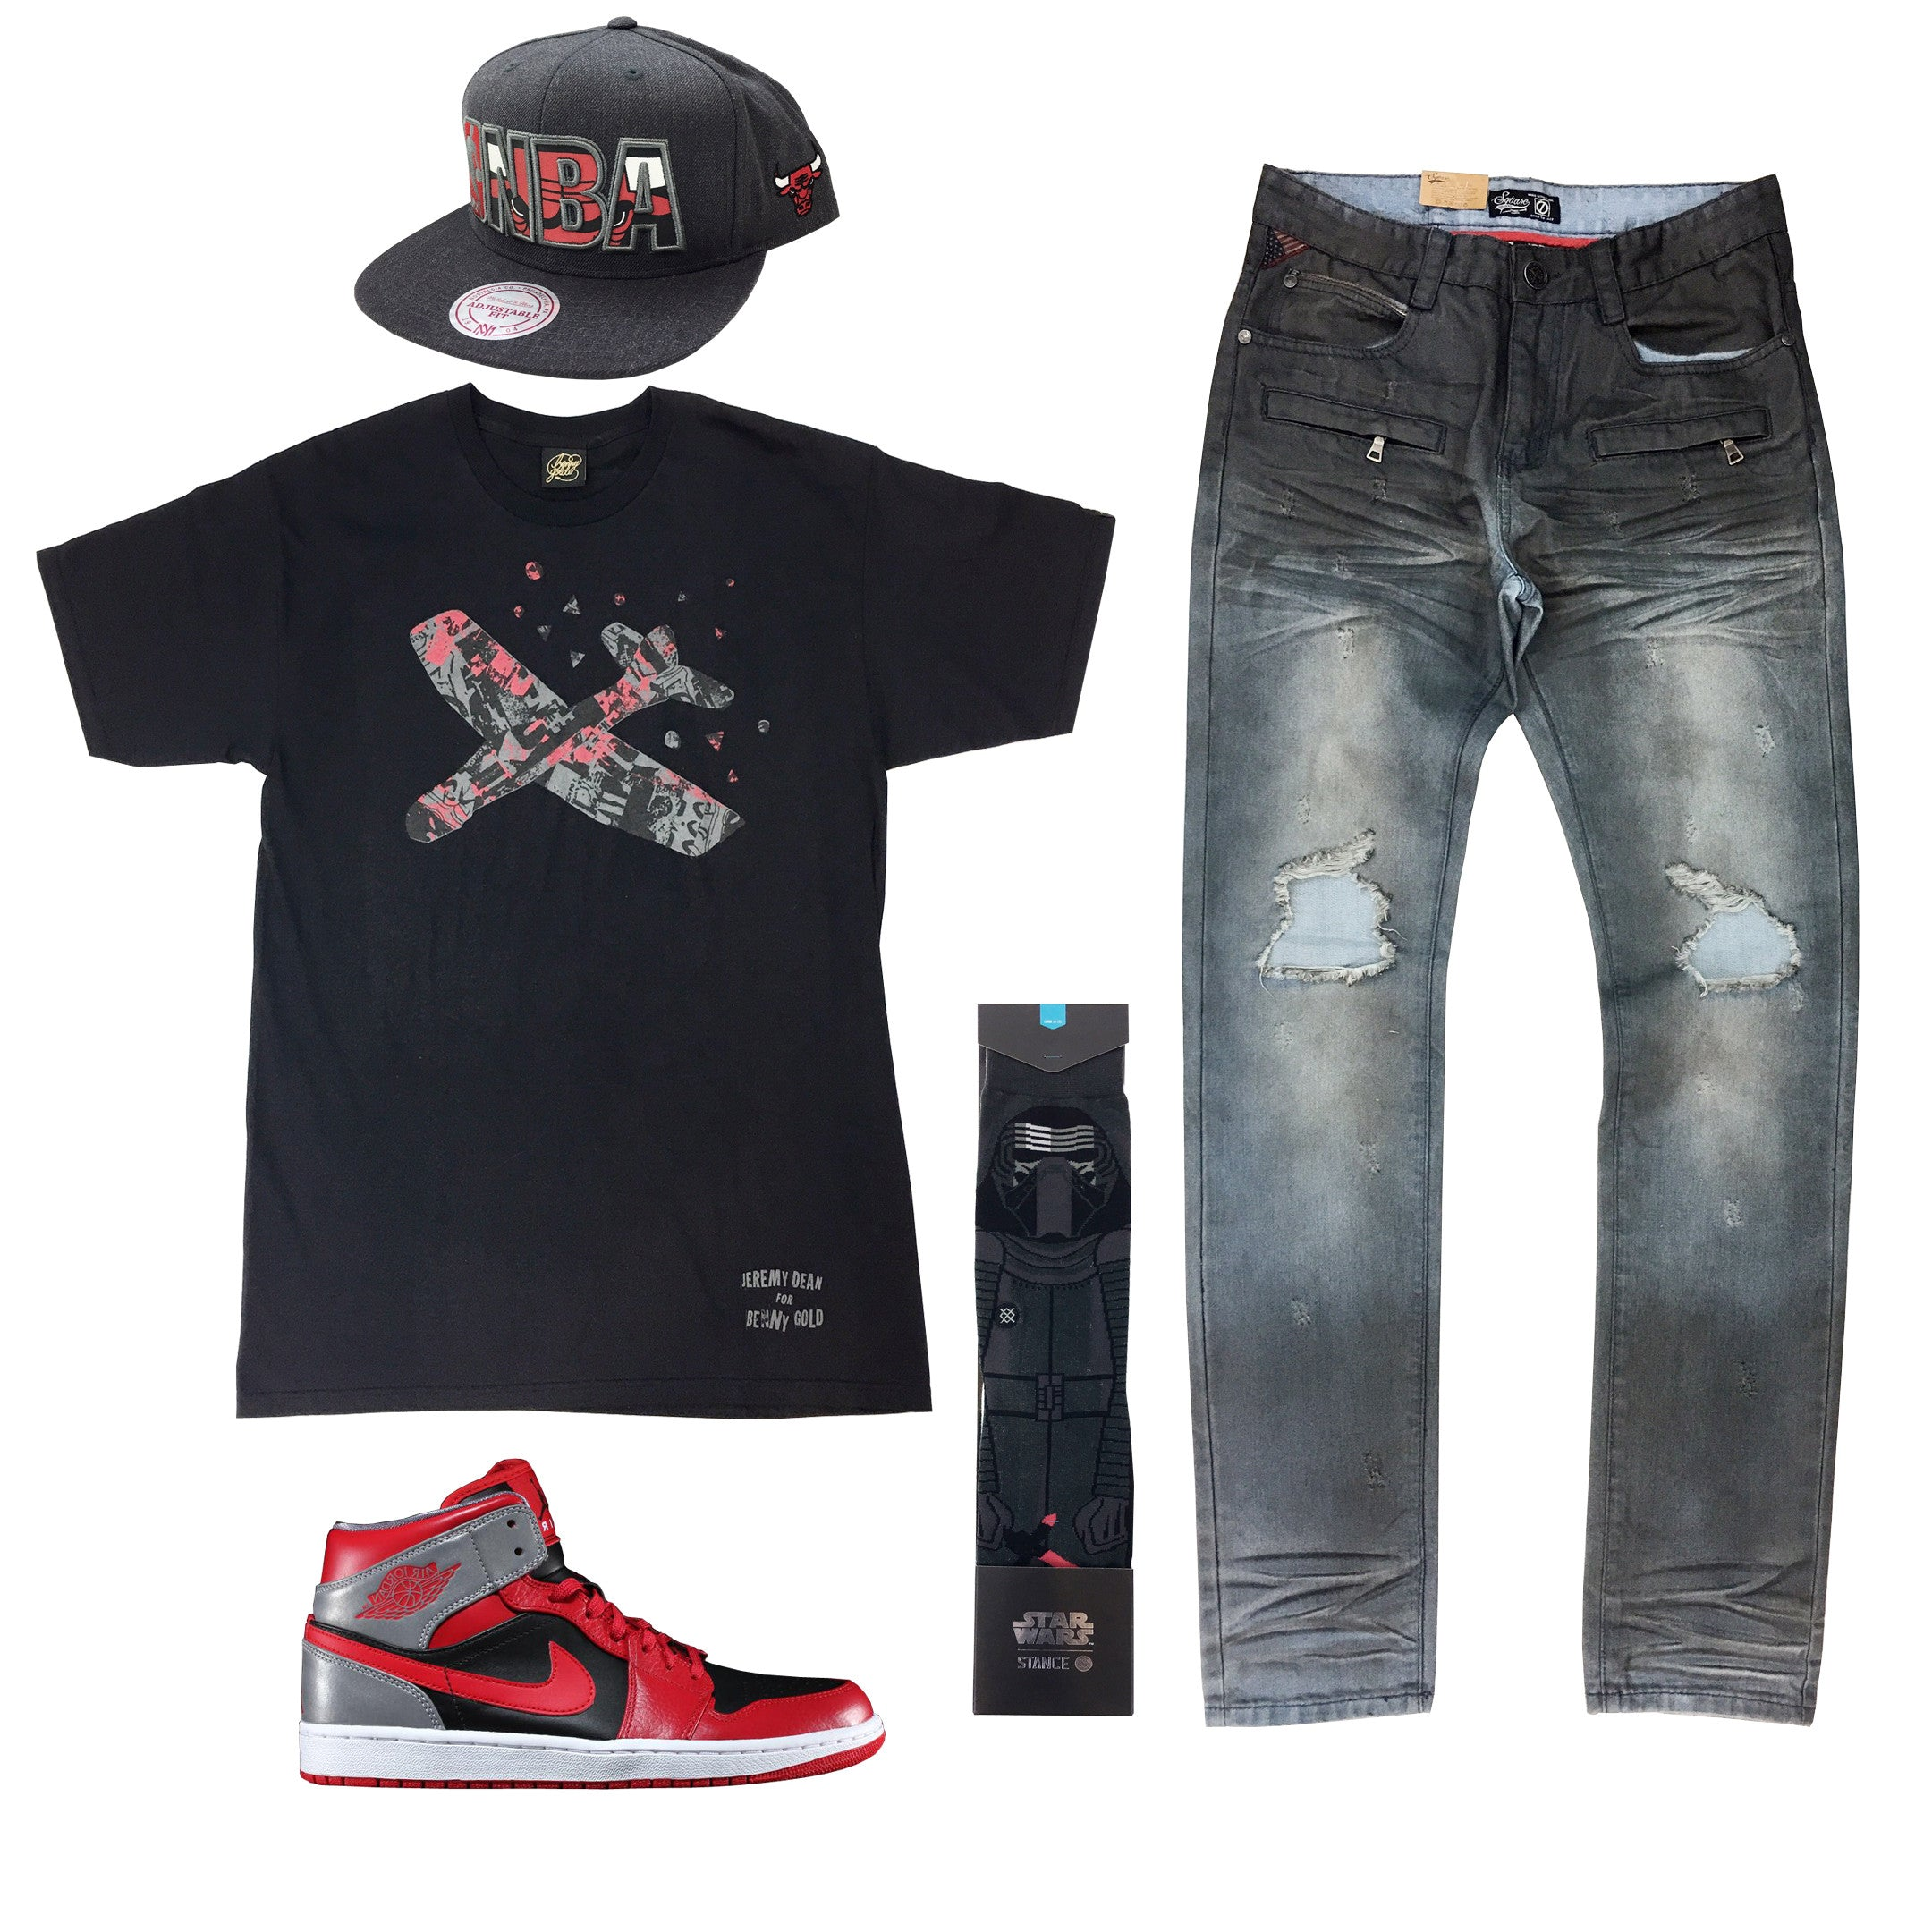 jordan 1 outfit sale up to 38 discounts